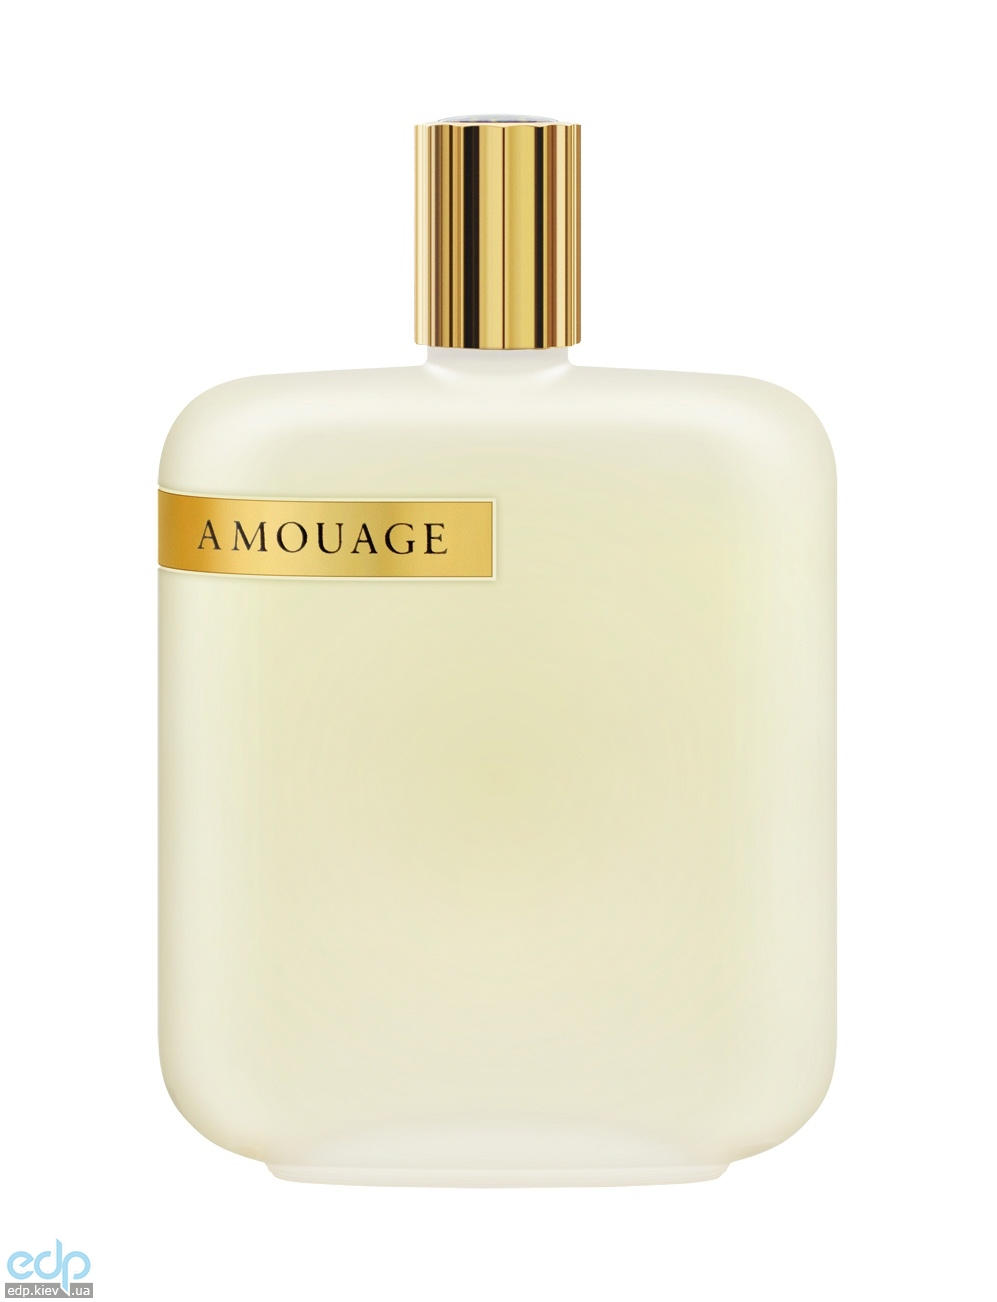 Amouage The Library Collection Opus V unisex - парфюмированная вода - 30 ml TESTER